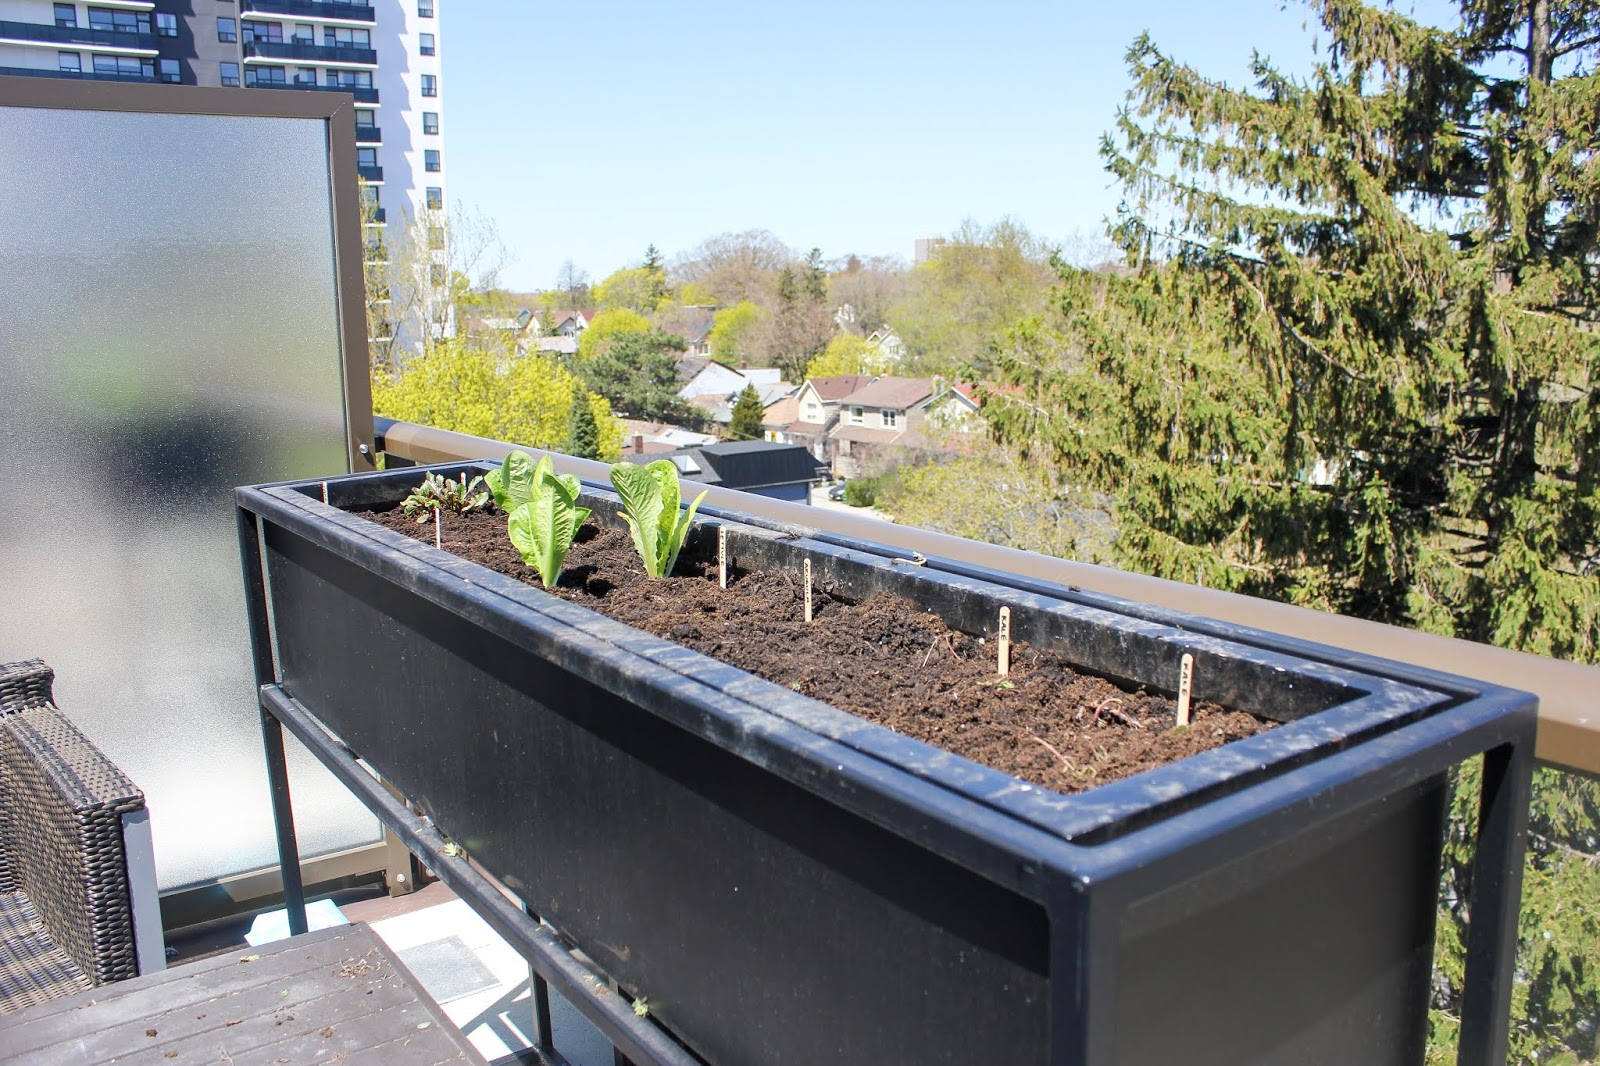 Urban Gardening - Creating a Condo Container Herb & Vegetable Garden